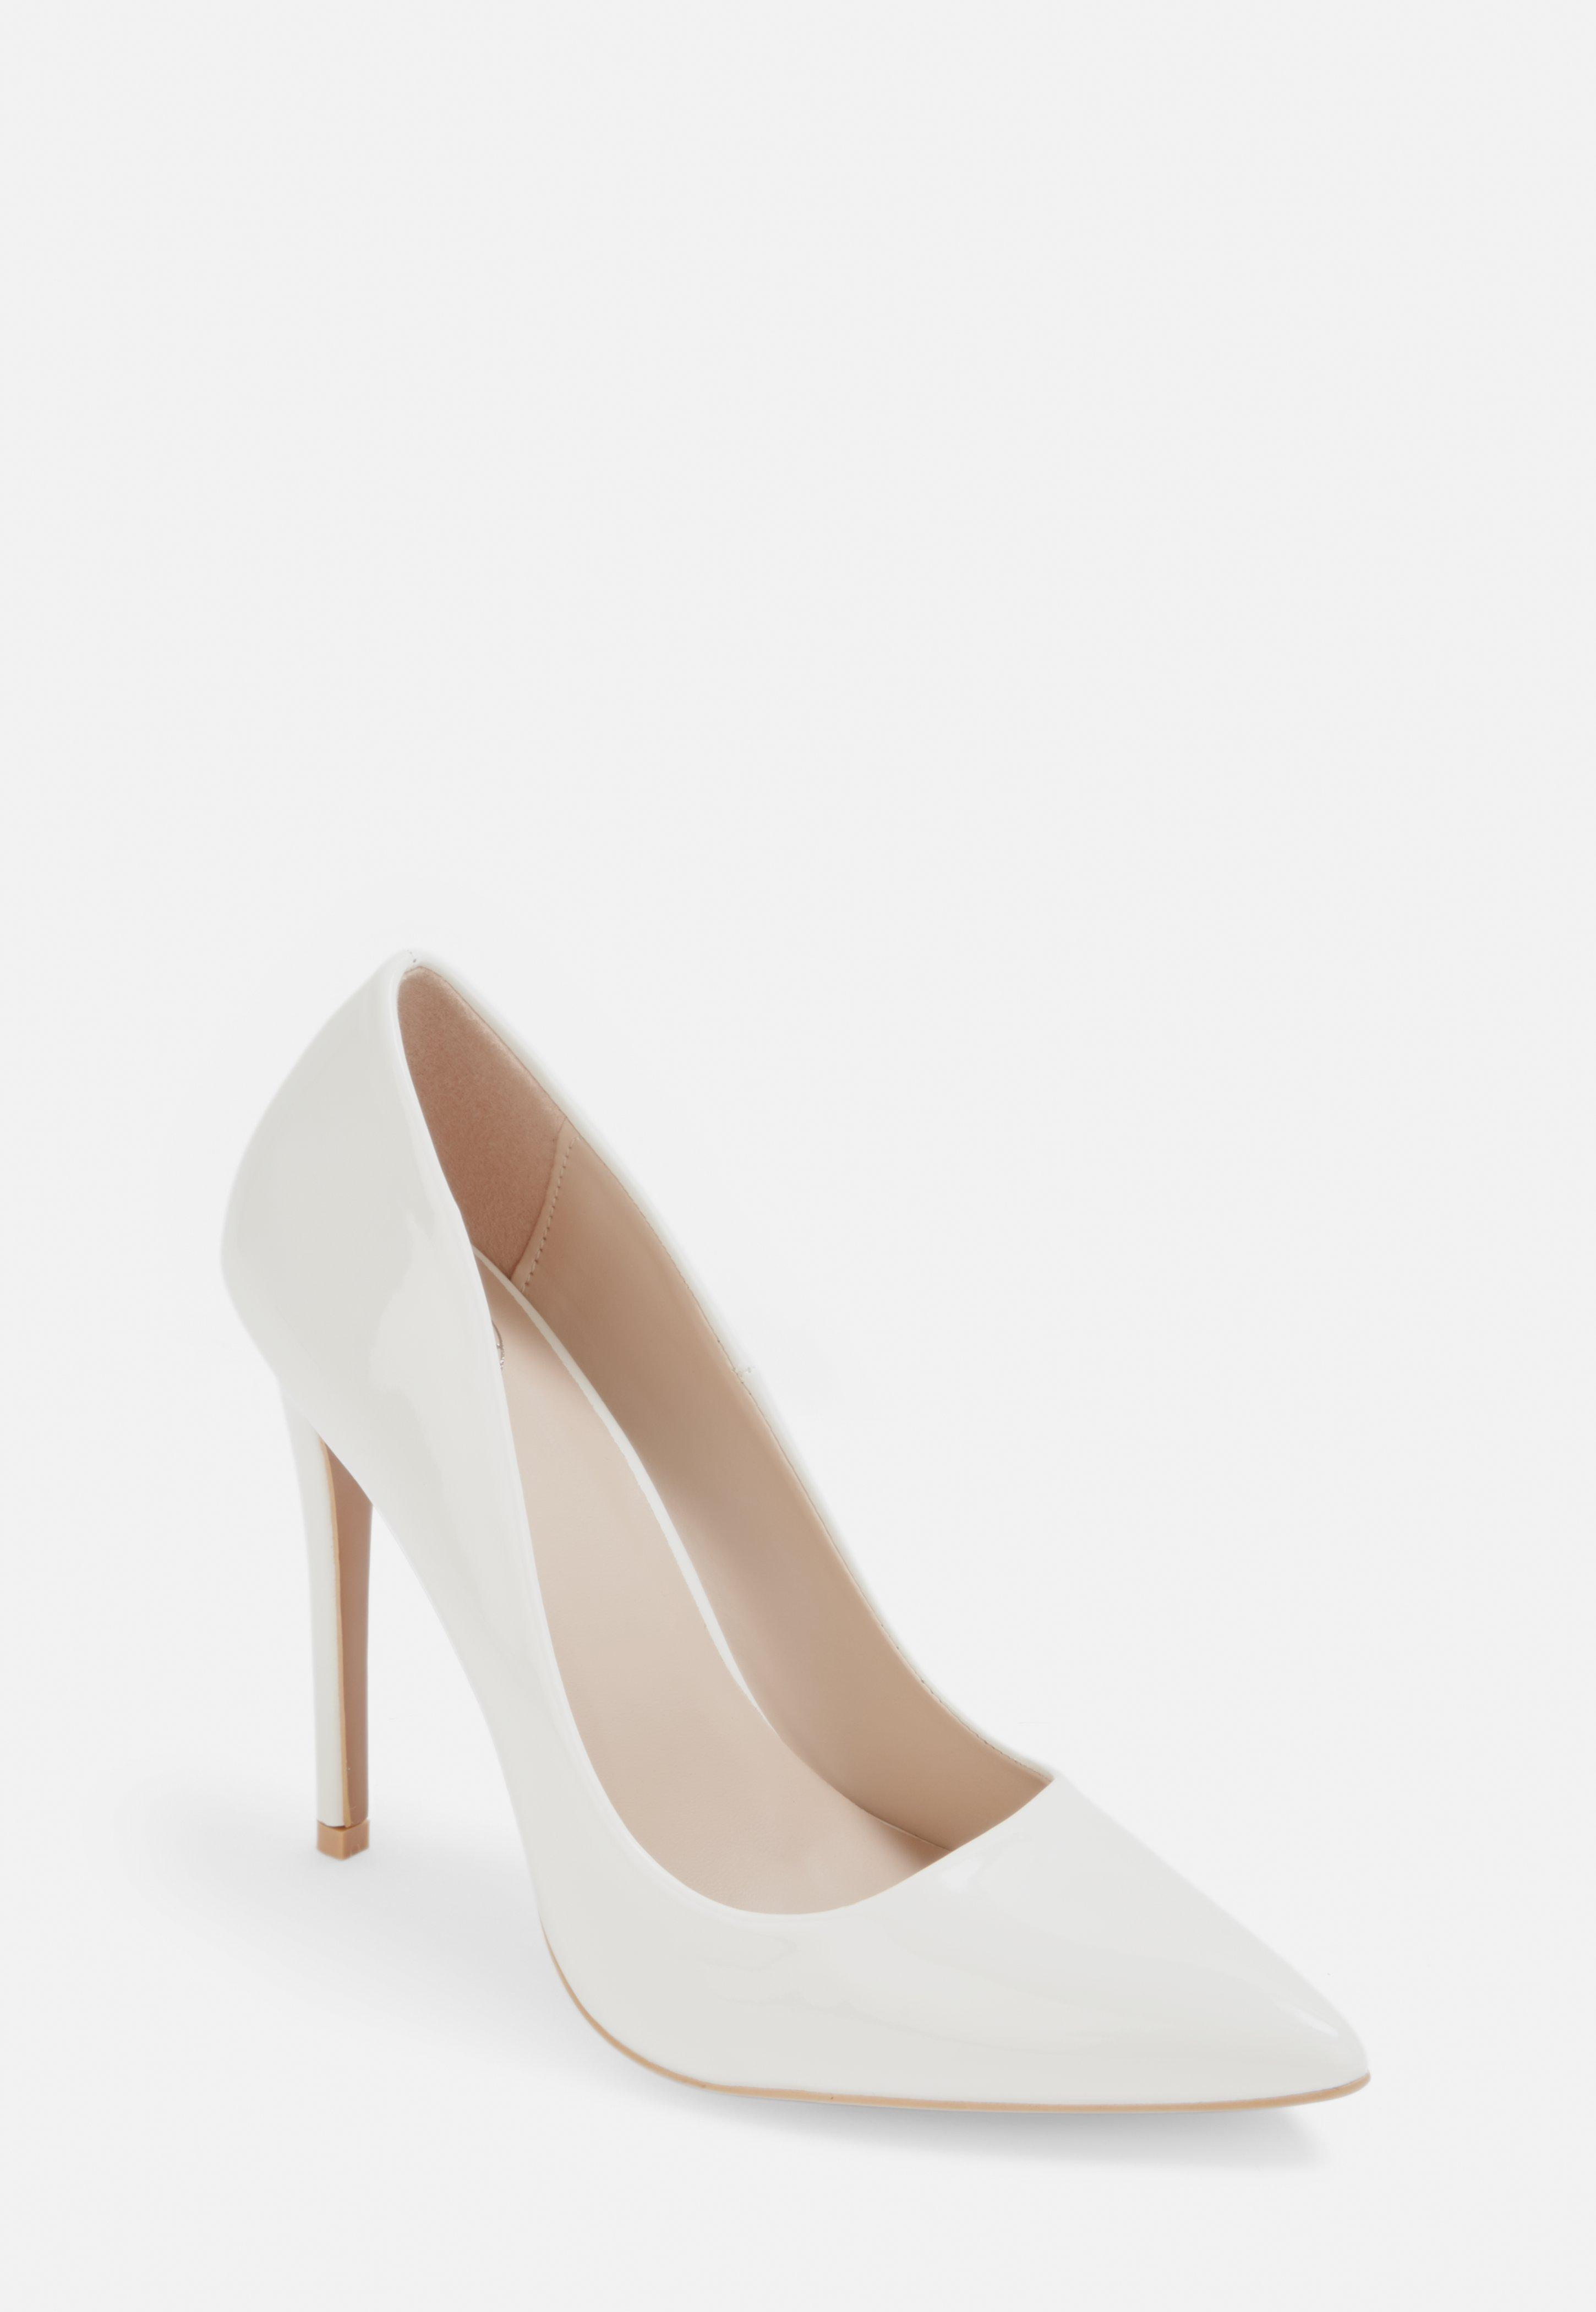 great variety styles discover latest trends lace up in White Wide Fit Patent Pumps